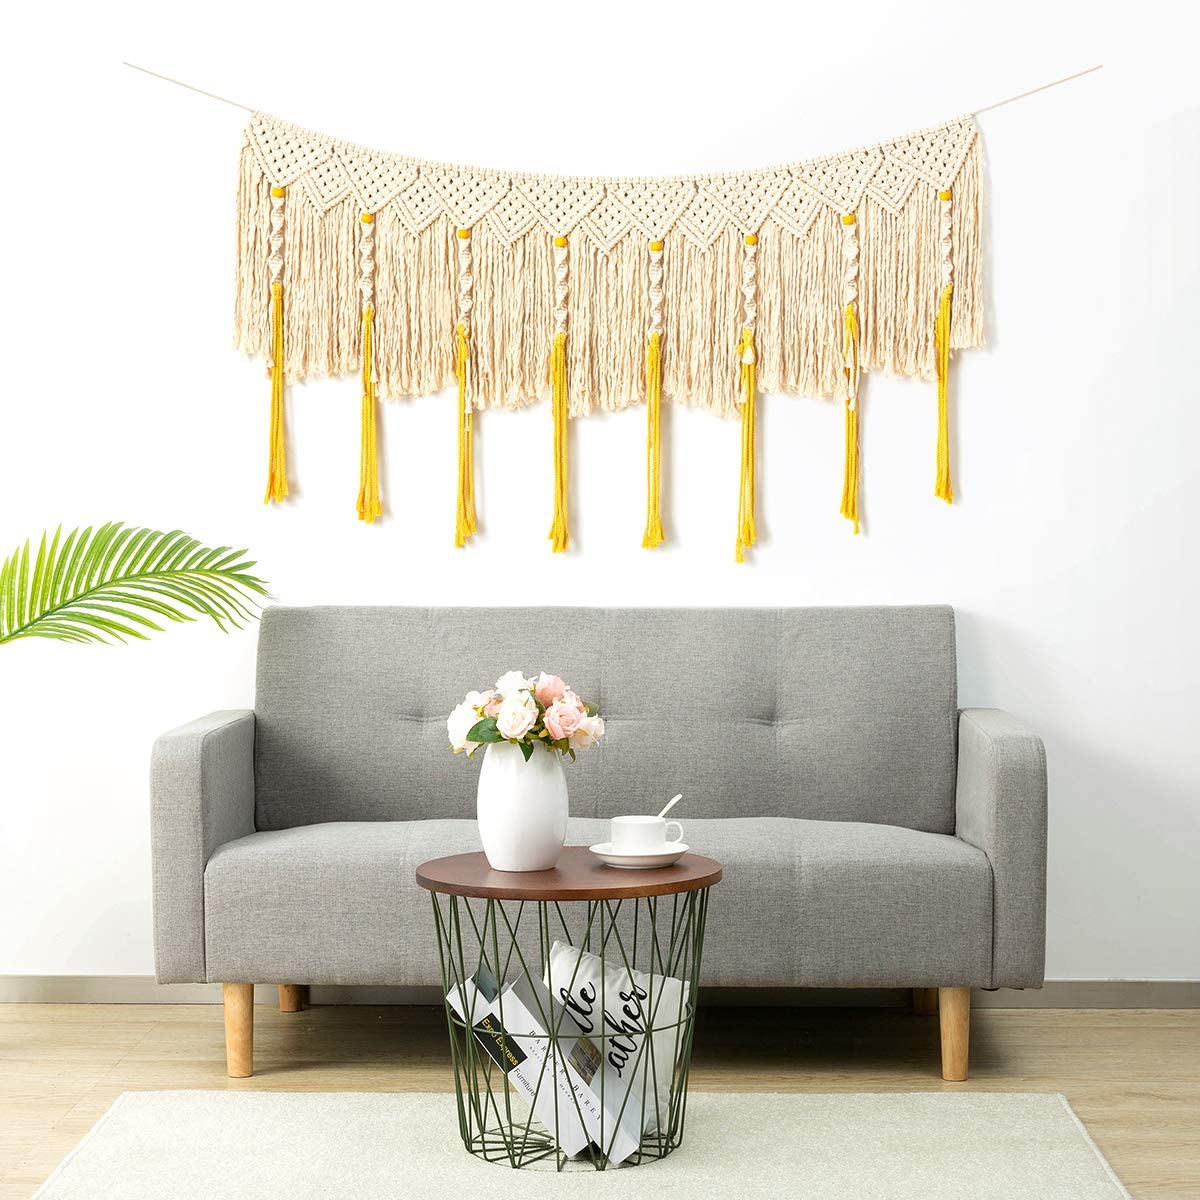 ARTALL Wall Hanging Macrame Curtain Fringe Banner Bohemian Wall Decor Woven Tapestry Home Decoration for Wedding Apartment Bedroom Living Room 62 x 35